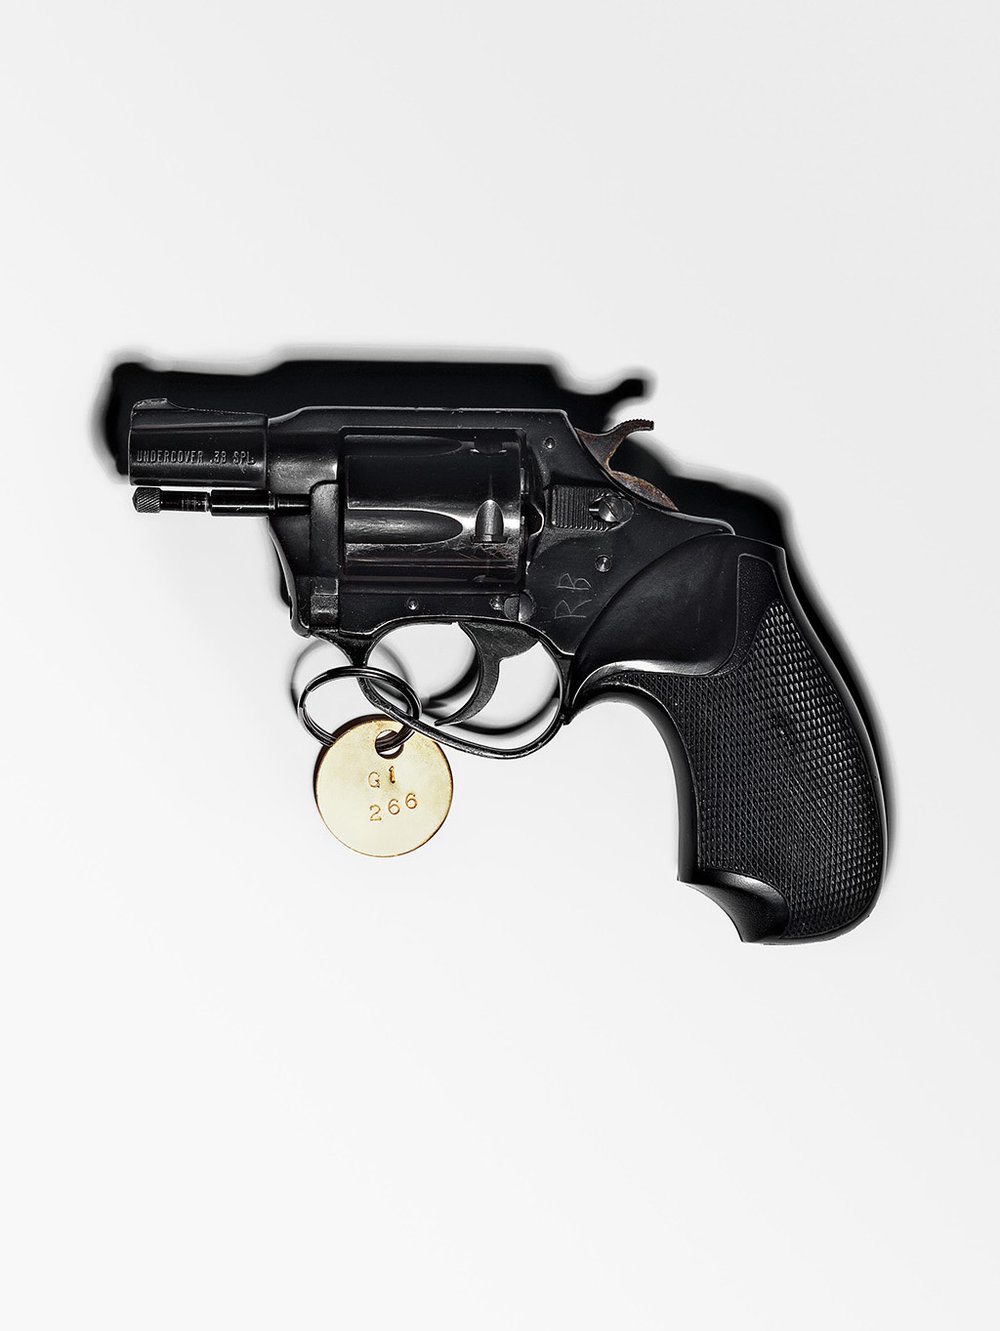 Document Book Cover: The .38 caliber revolver used to assassinate John Lennon. (Photograph by Henry Leutwyler)